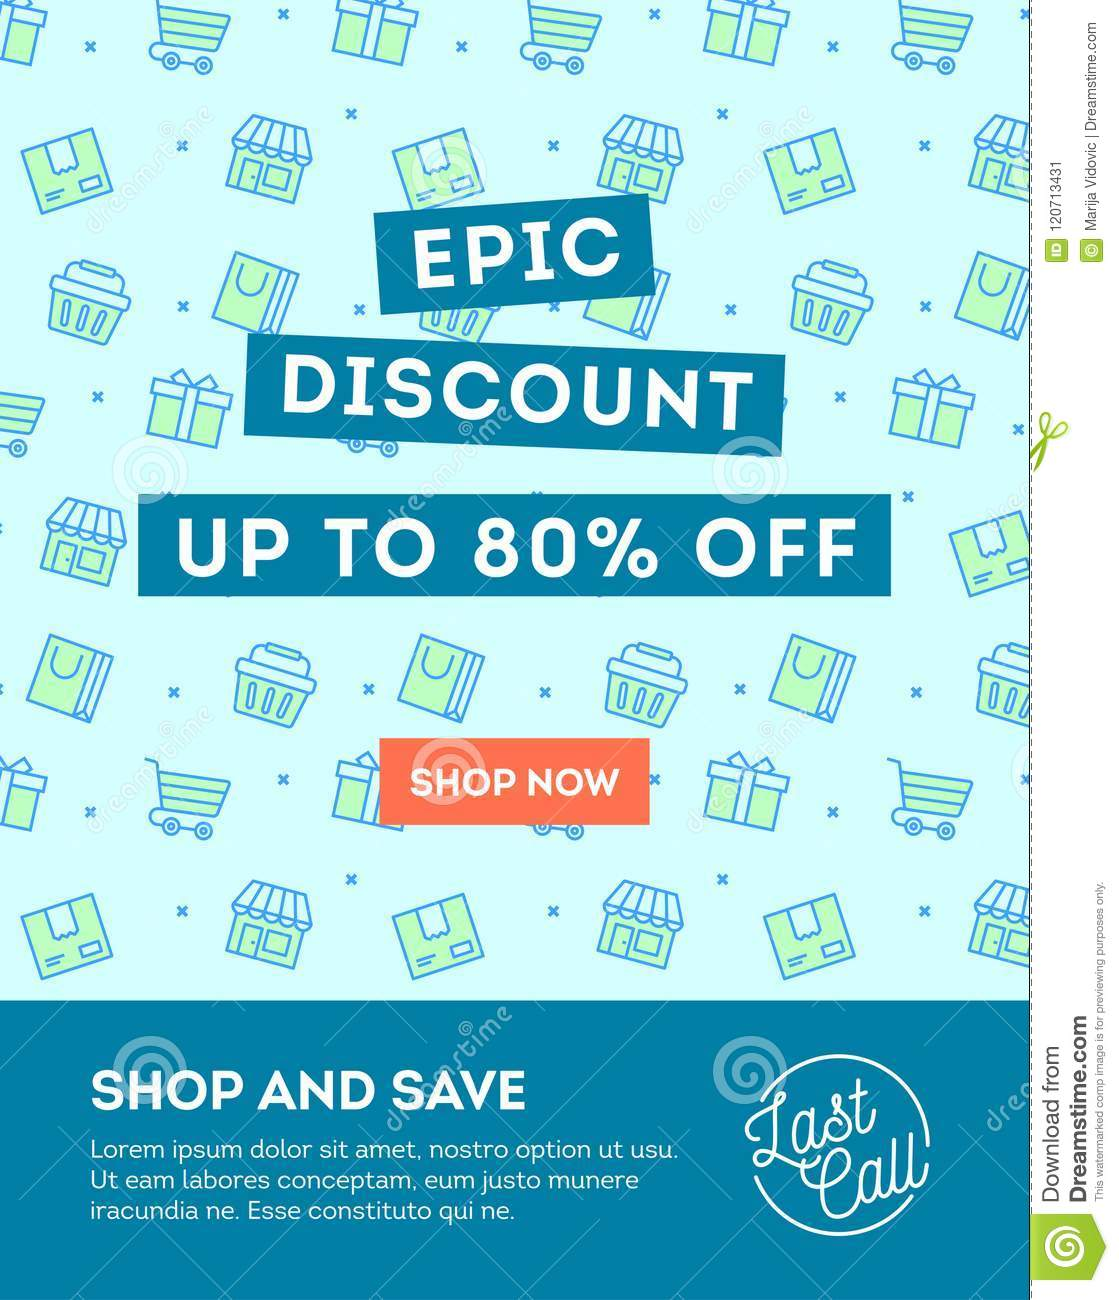 sale discount online shopping banner newsletter template stock